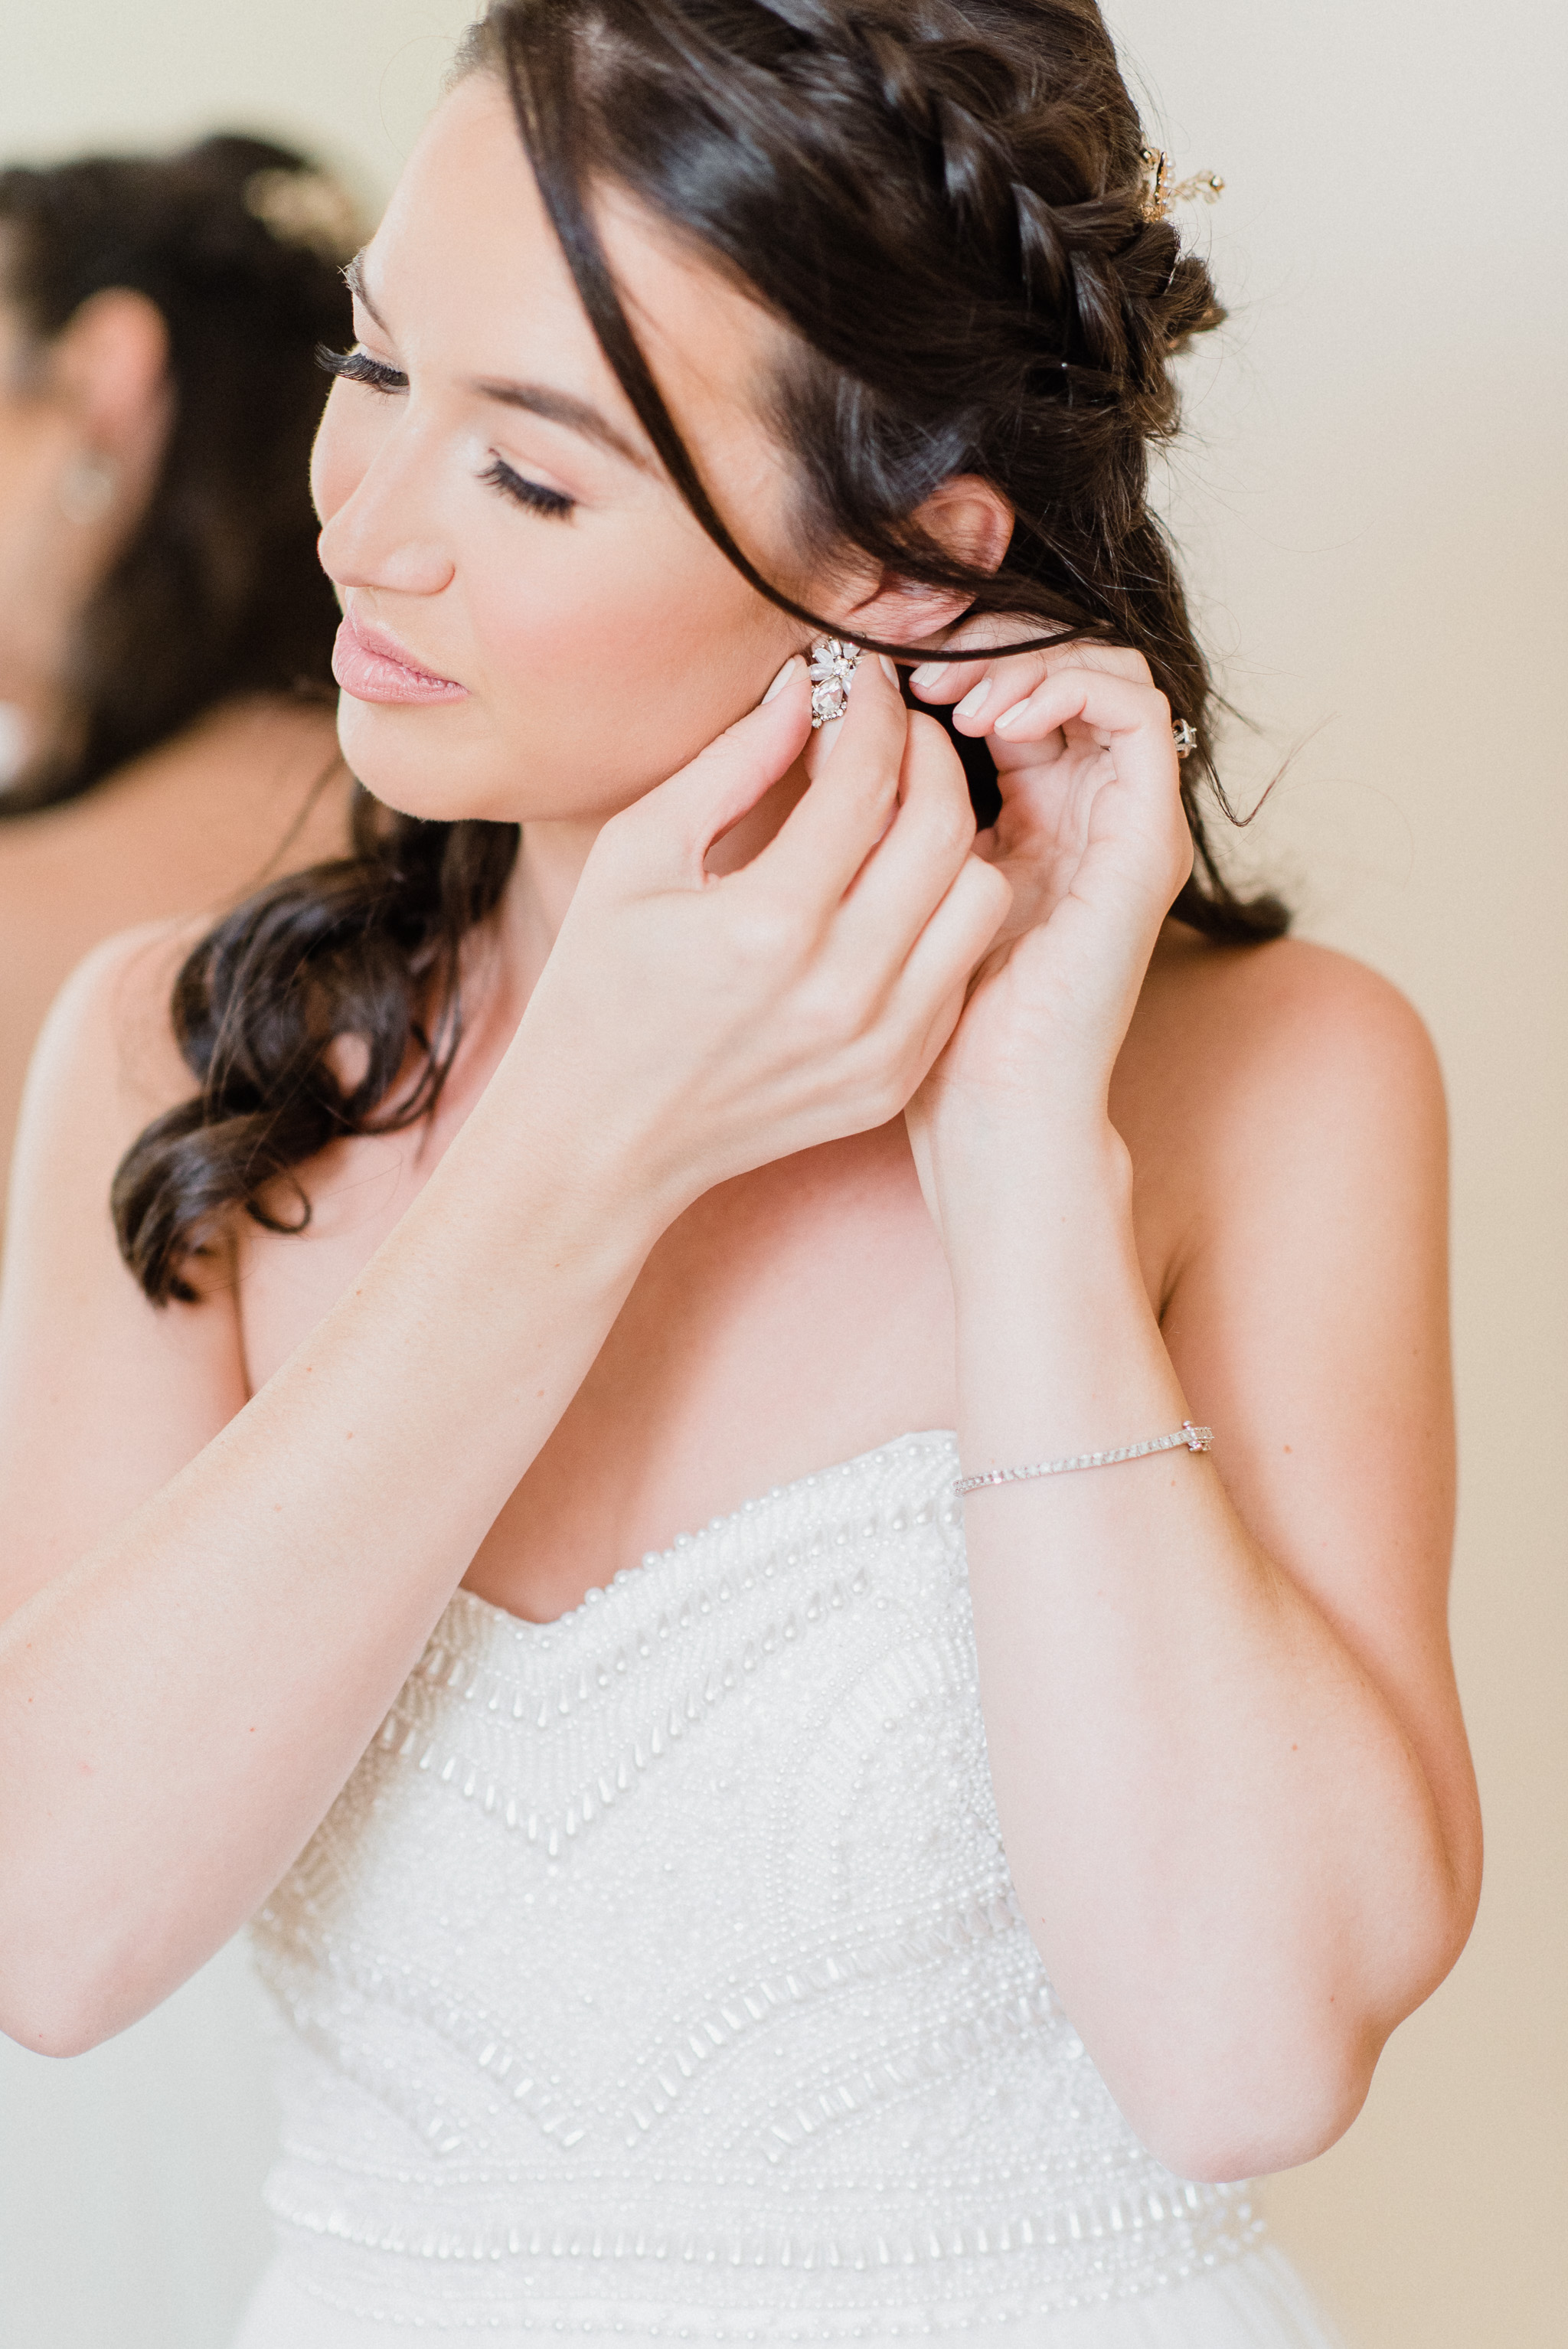 Fine art bridal details by Jenn Kavanagh Photography